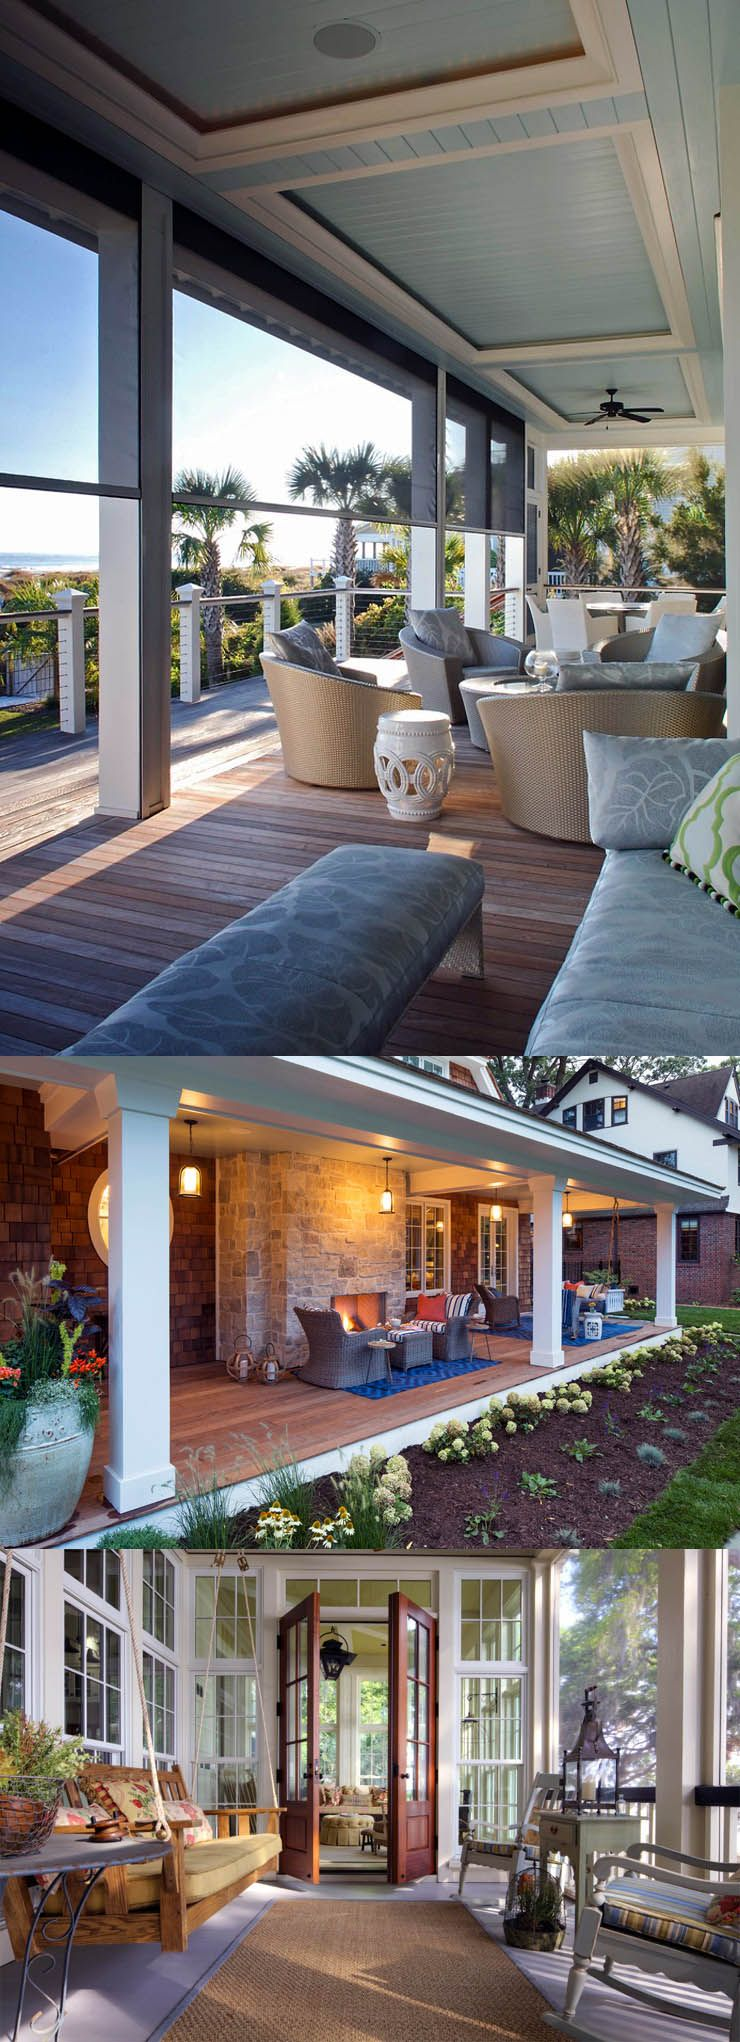 5 Back Porch Ideas & Designs For Small Homes | House with ... on Back Deck Ideas For Ranch Style Homes id=52444